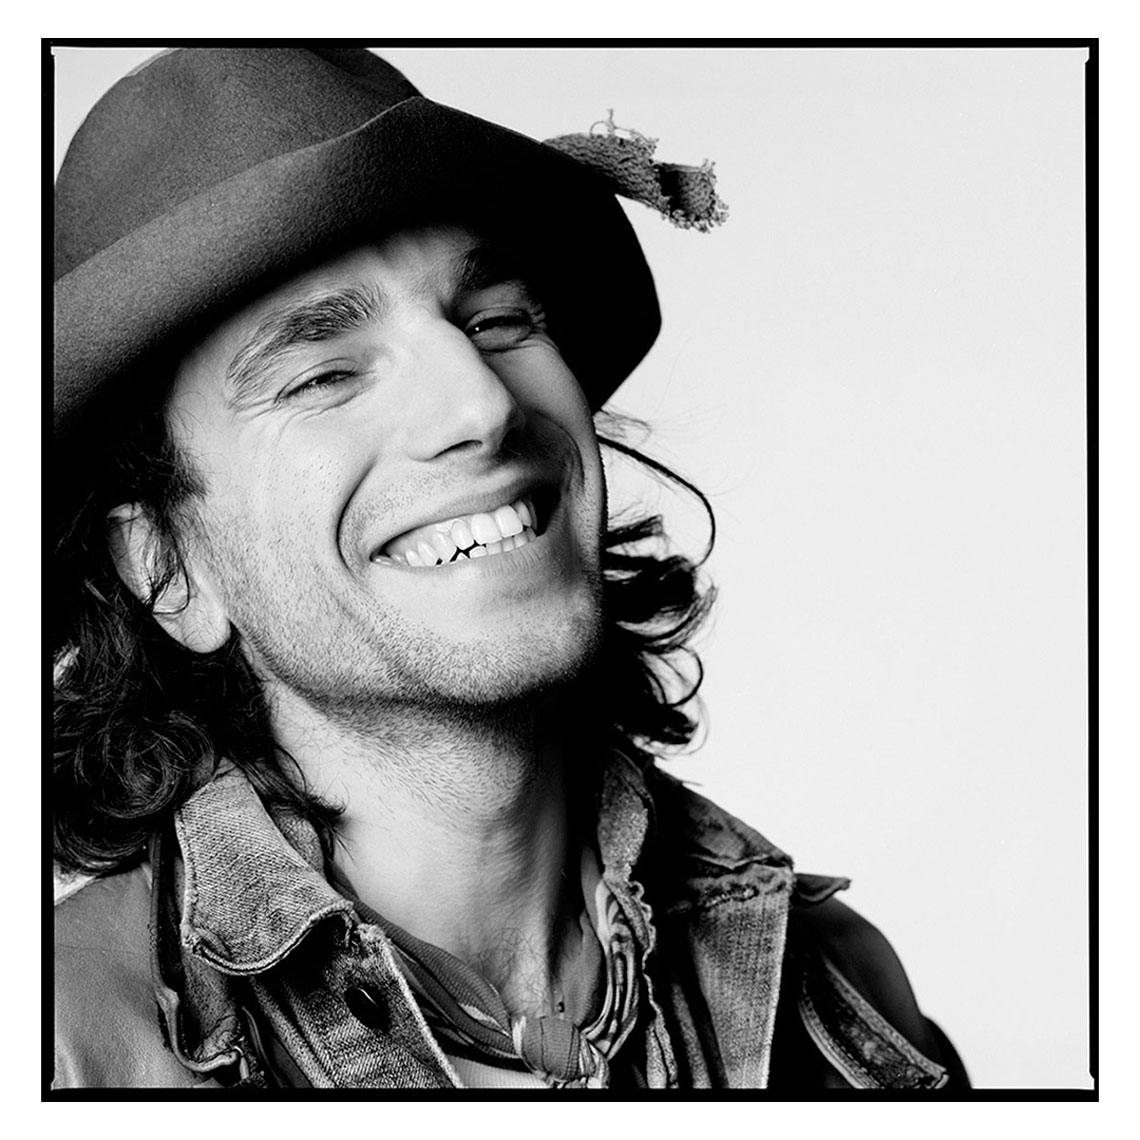 daniel-day-lewis-68-1988mf-copy